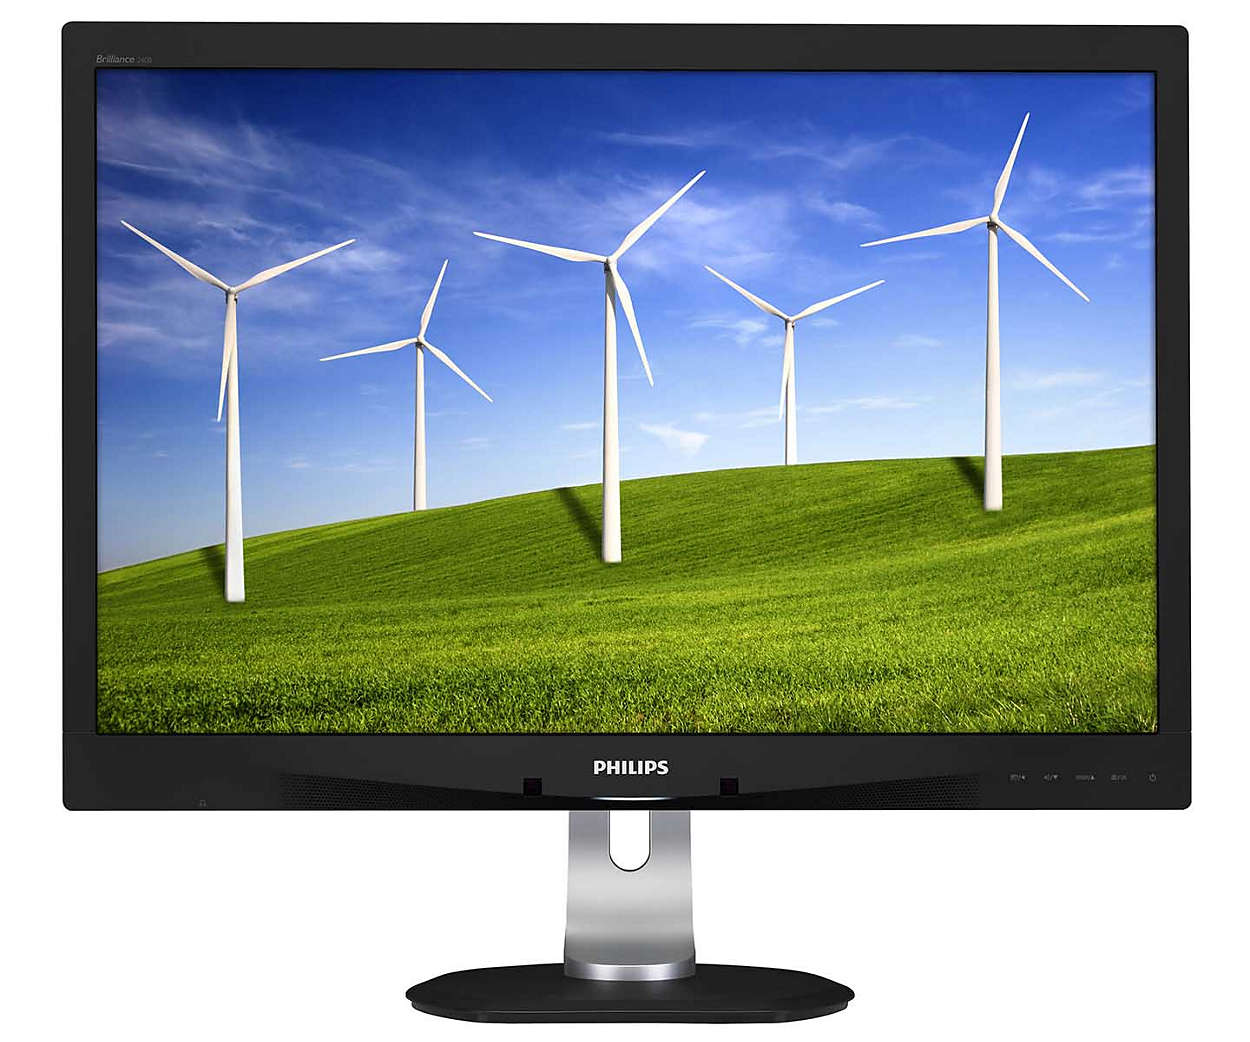 "Philips LCD 240B4QPYEB 24""wide/1920x1200/5ms/20mil:1/DP/2xUSB/LED/PLS/PowerSensor/pivot/repro"